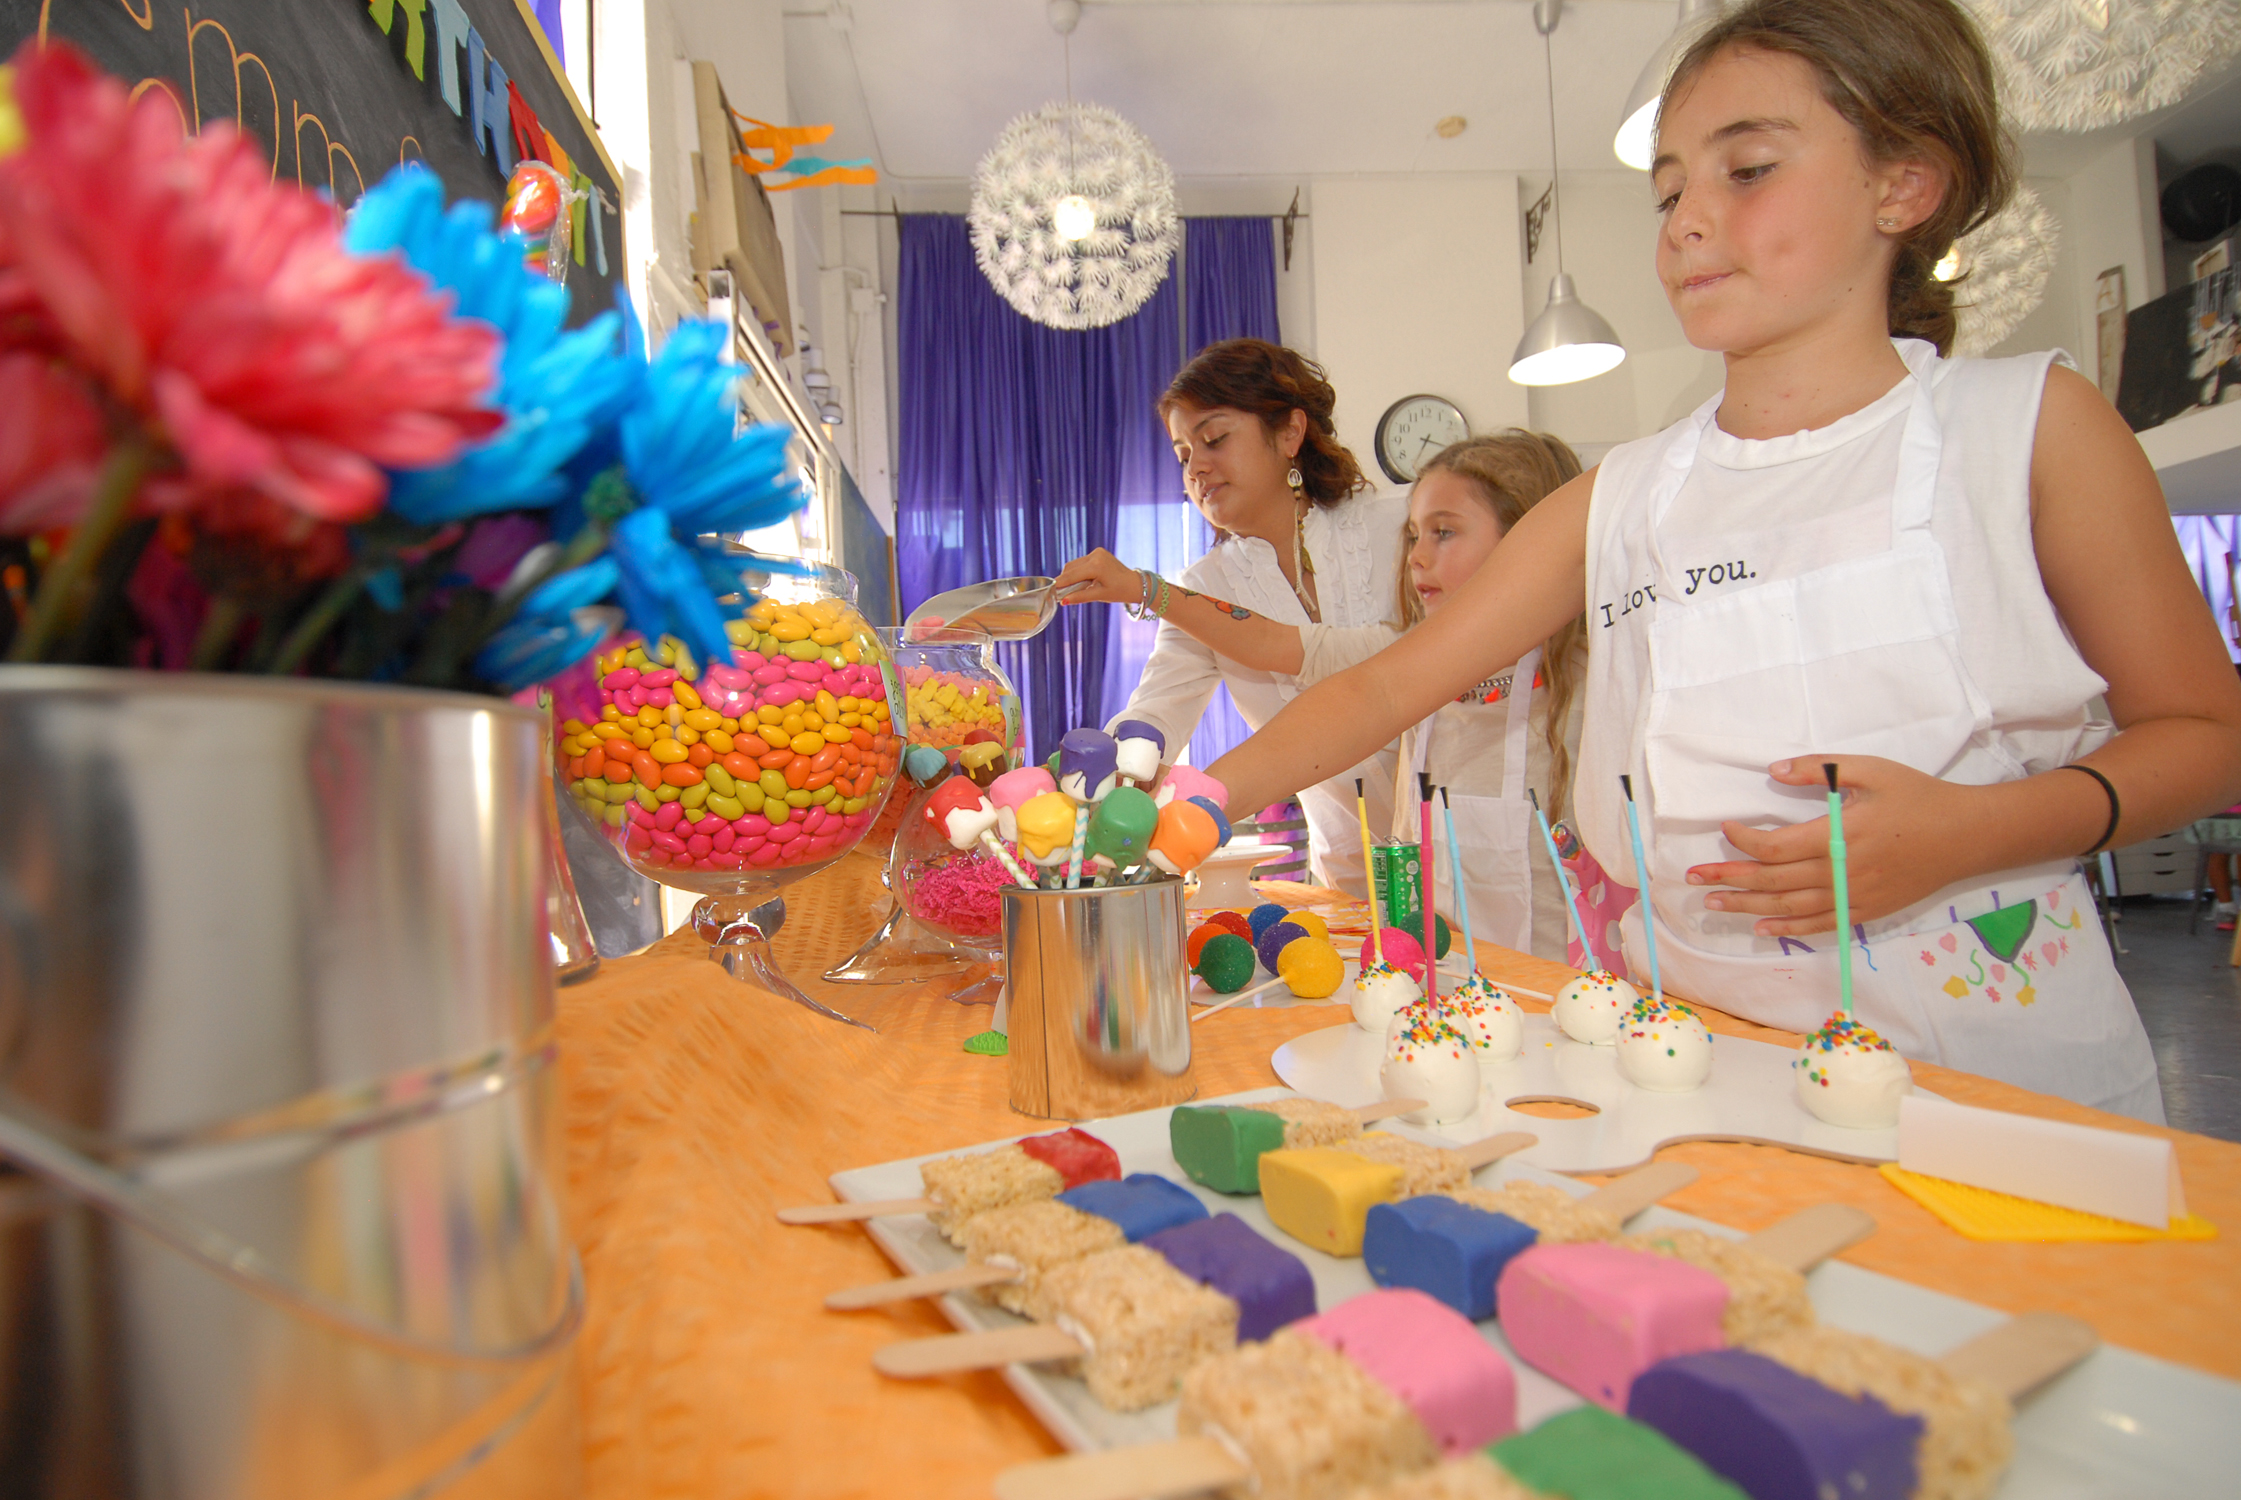 tarynco-events-kids-party-art-carnival-themed-candy-station-bar.jpg